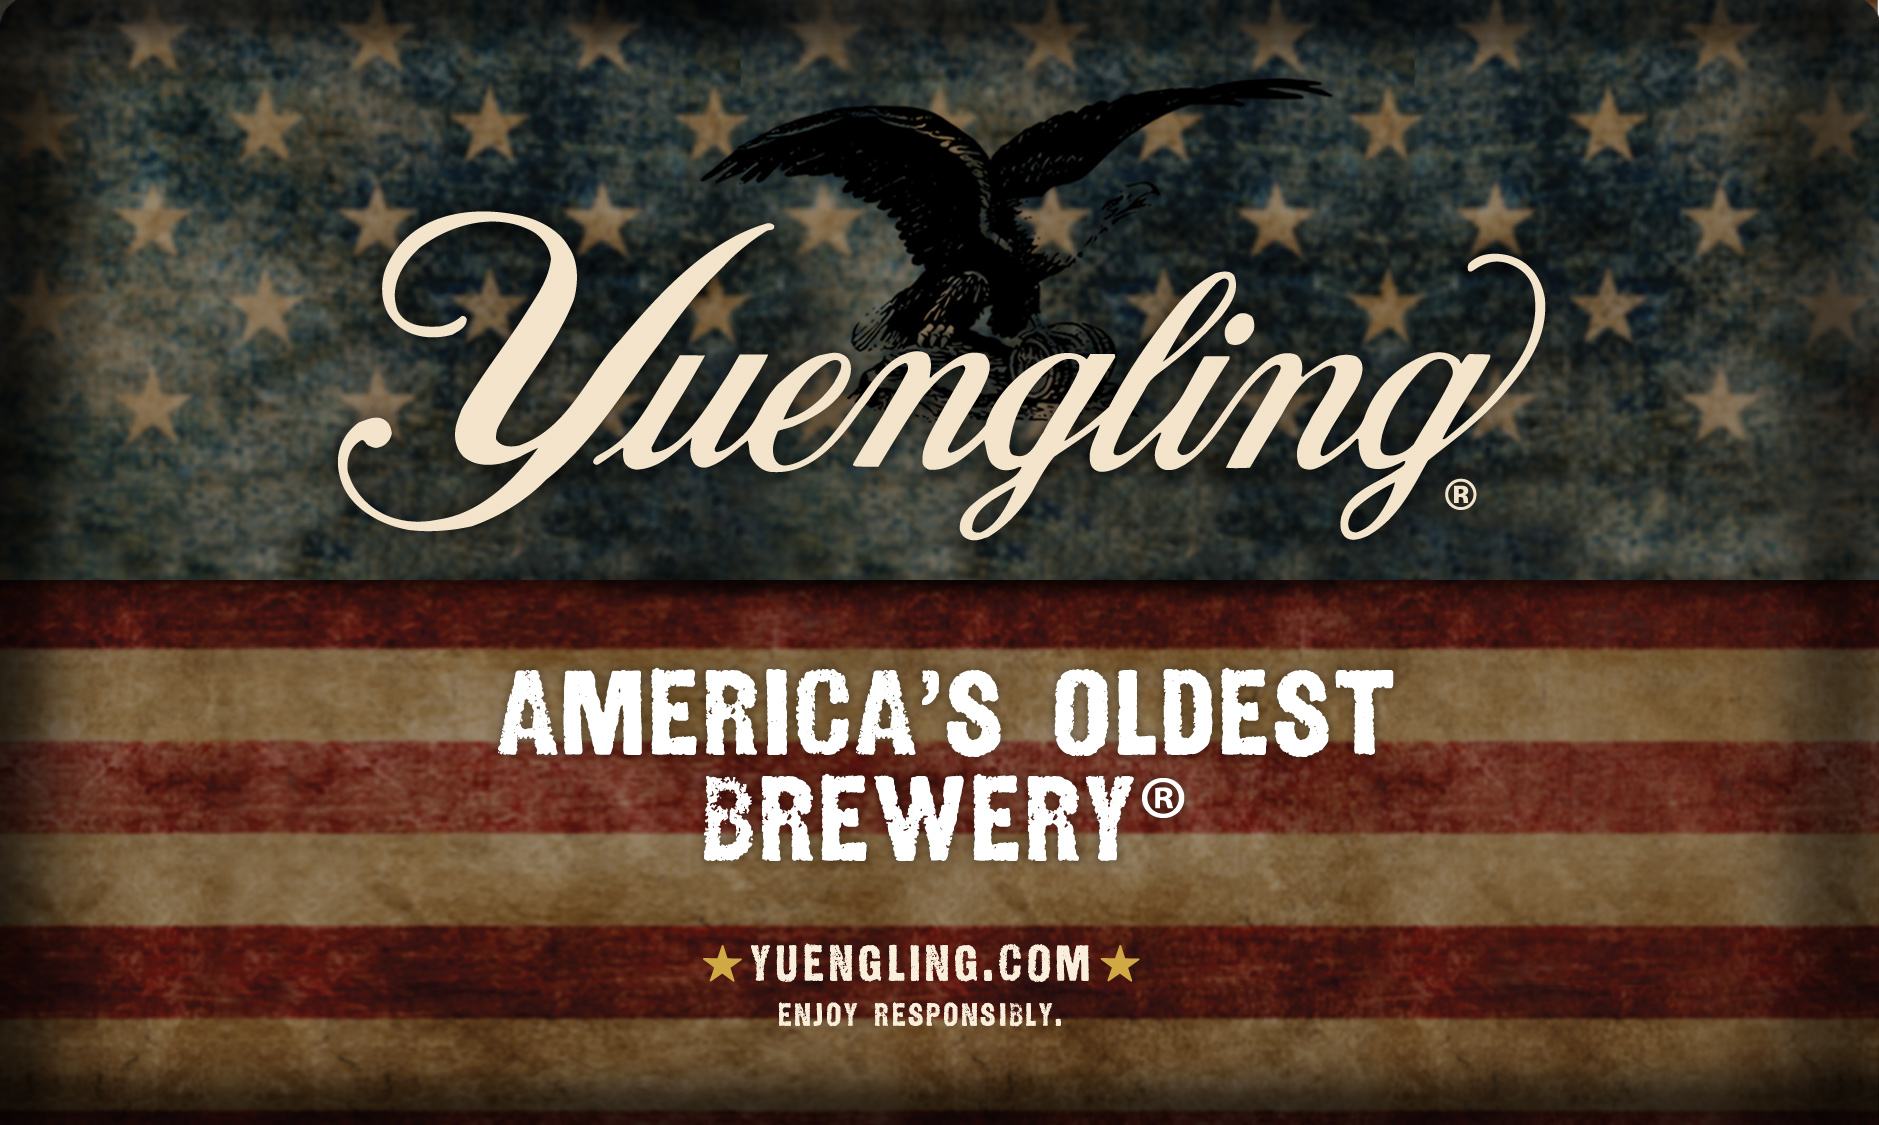 Image from yuengling.com